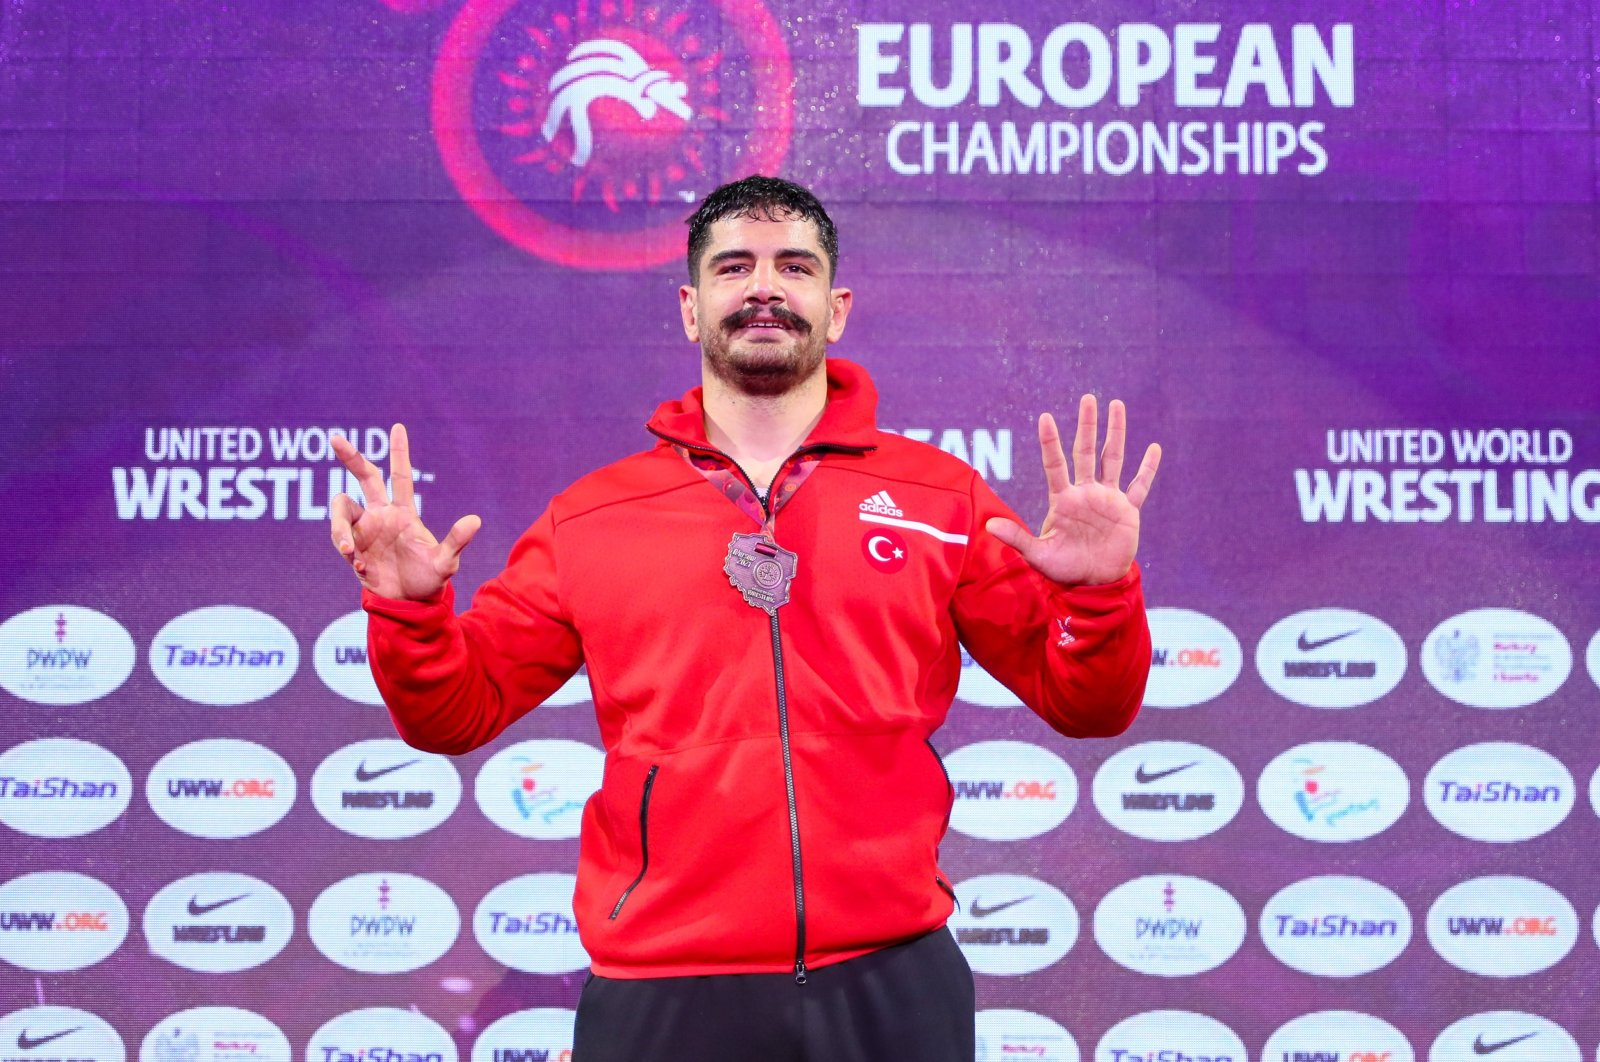 Taha Akgül poses with his medal after winning the freestyle 125-kg category at the European Wrestling Championships in Warsaw, Poland, April 21, 2021. (IHA Photo)